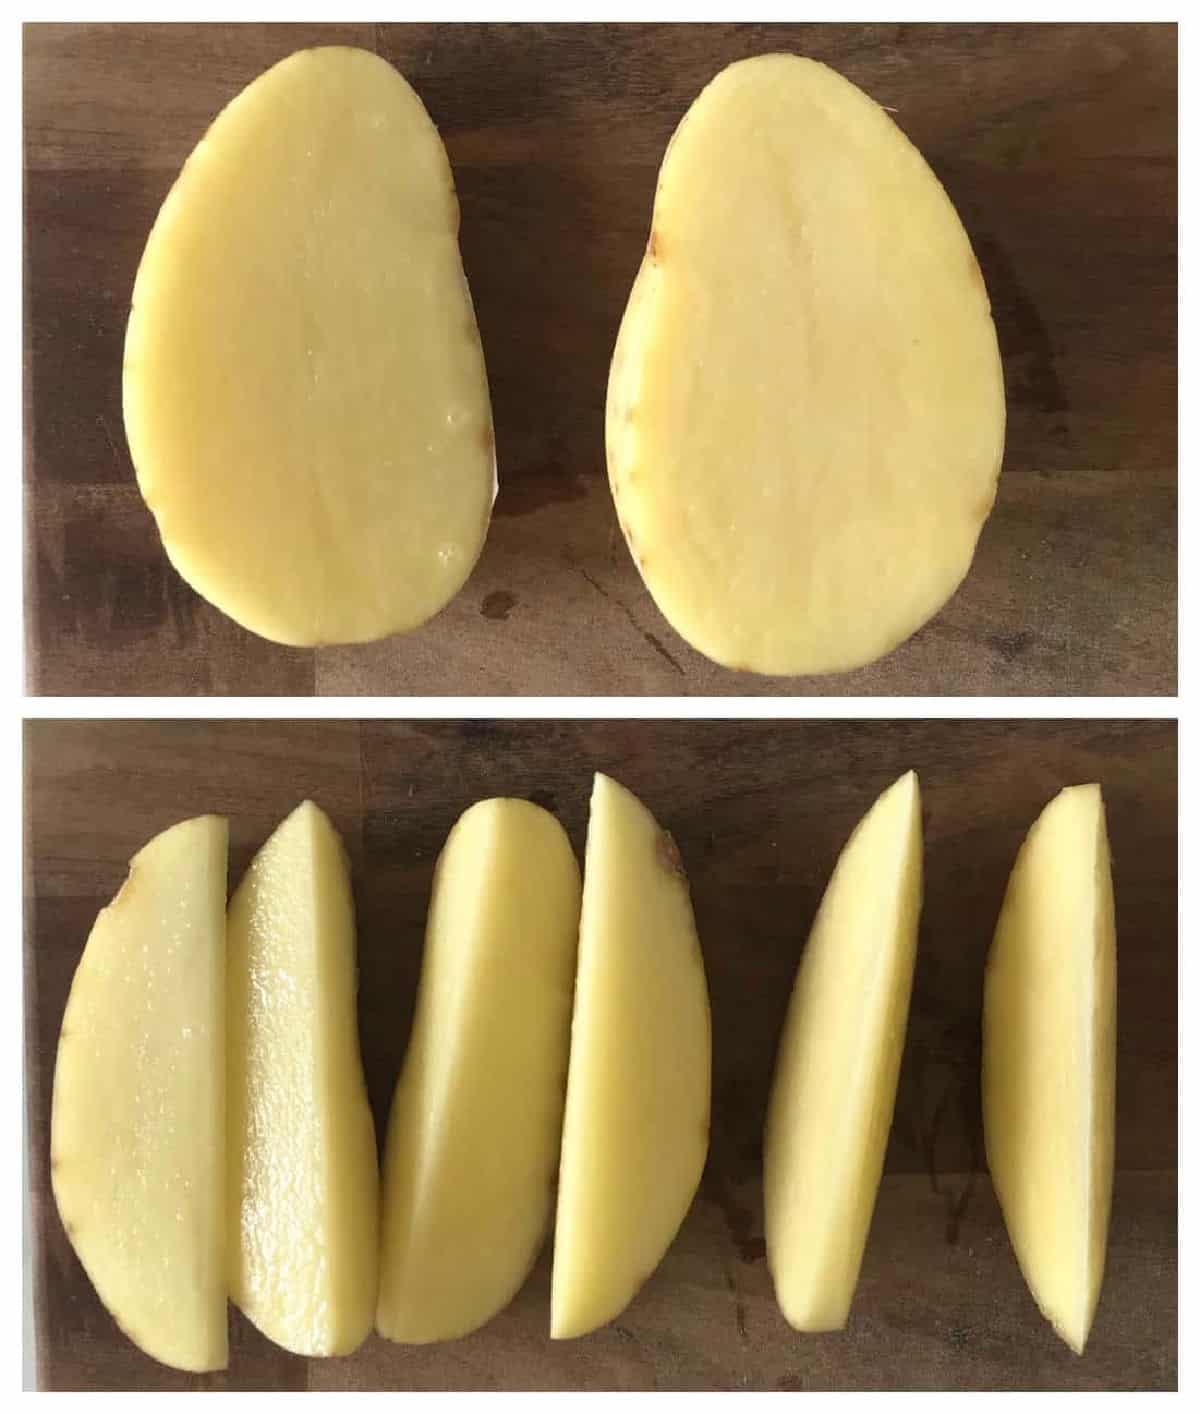 Two images showing raw potatoes on wooden boards cut in half and six wedges